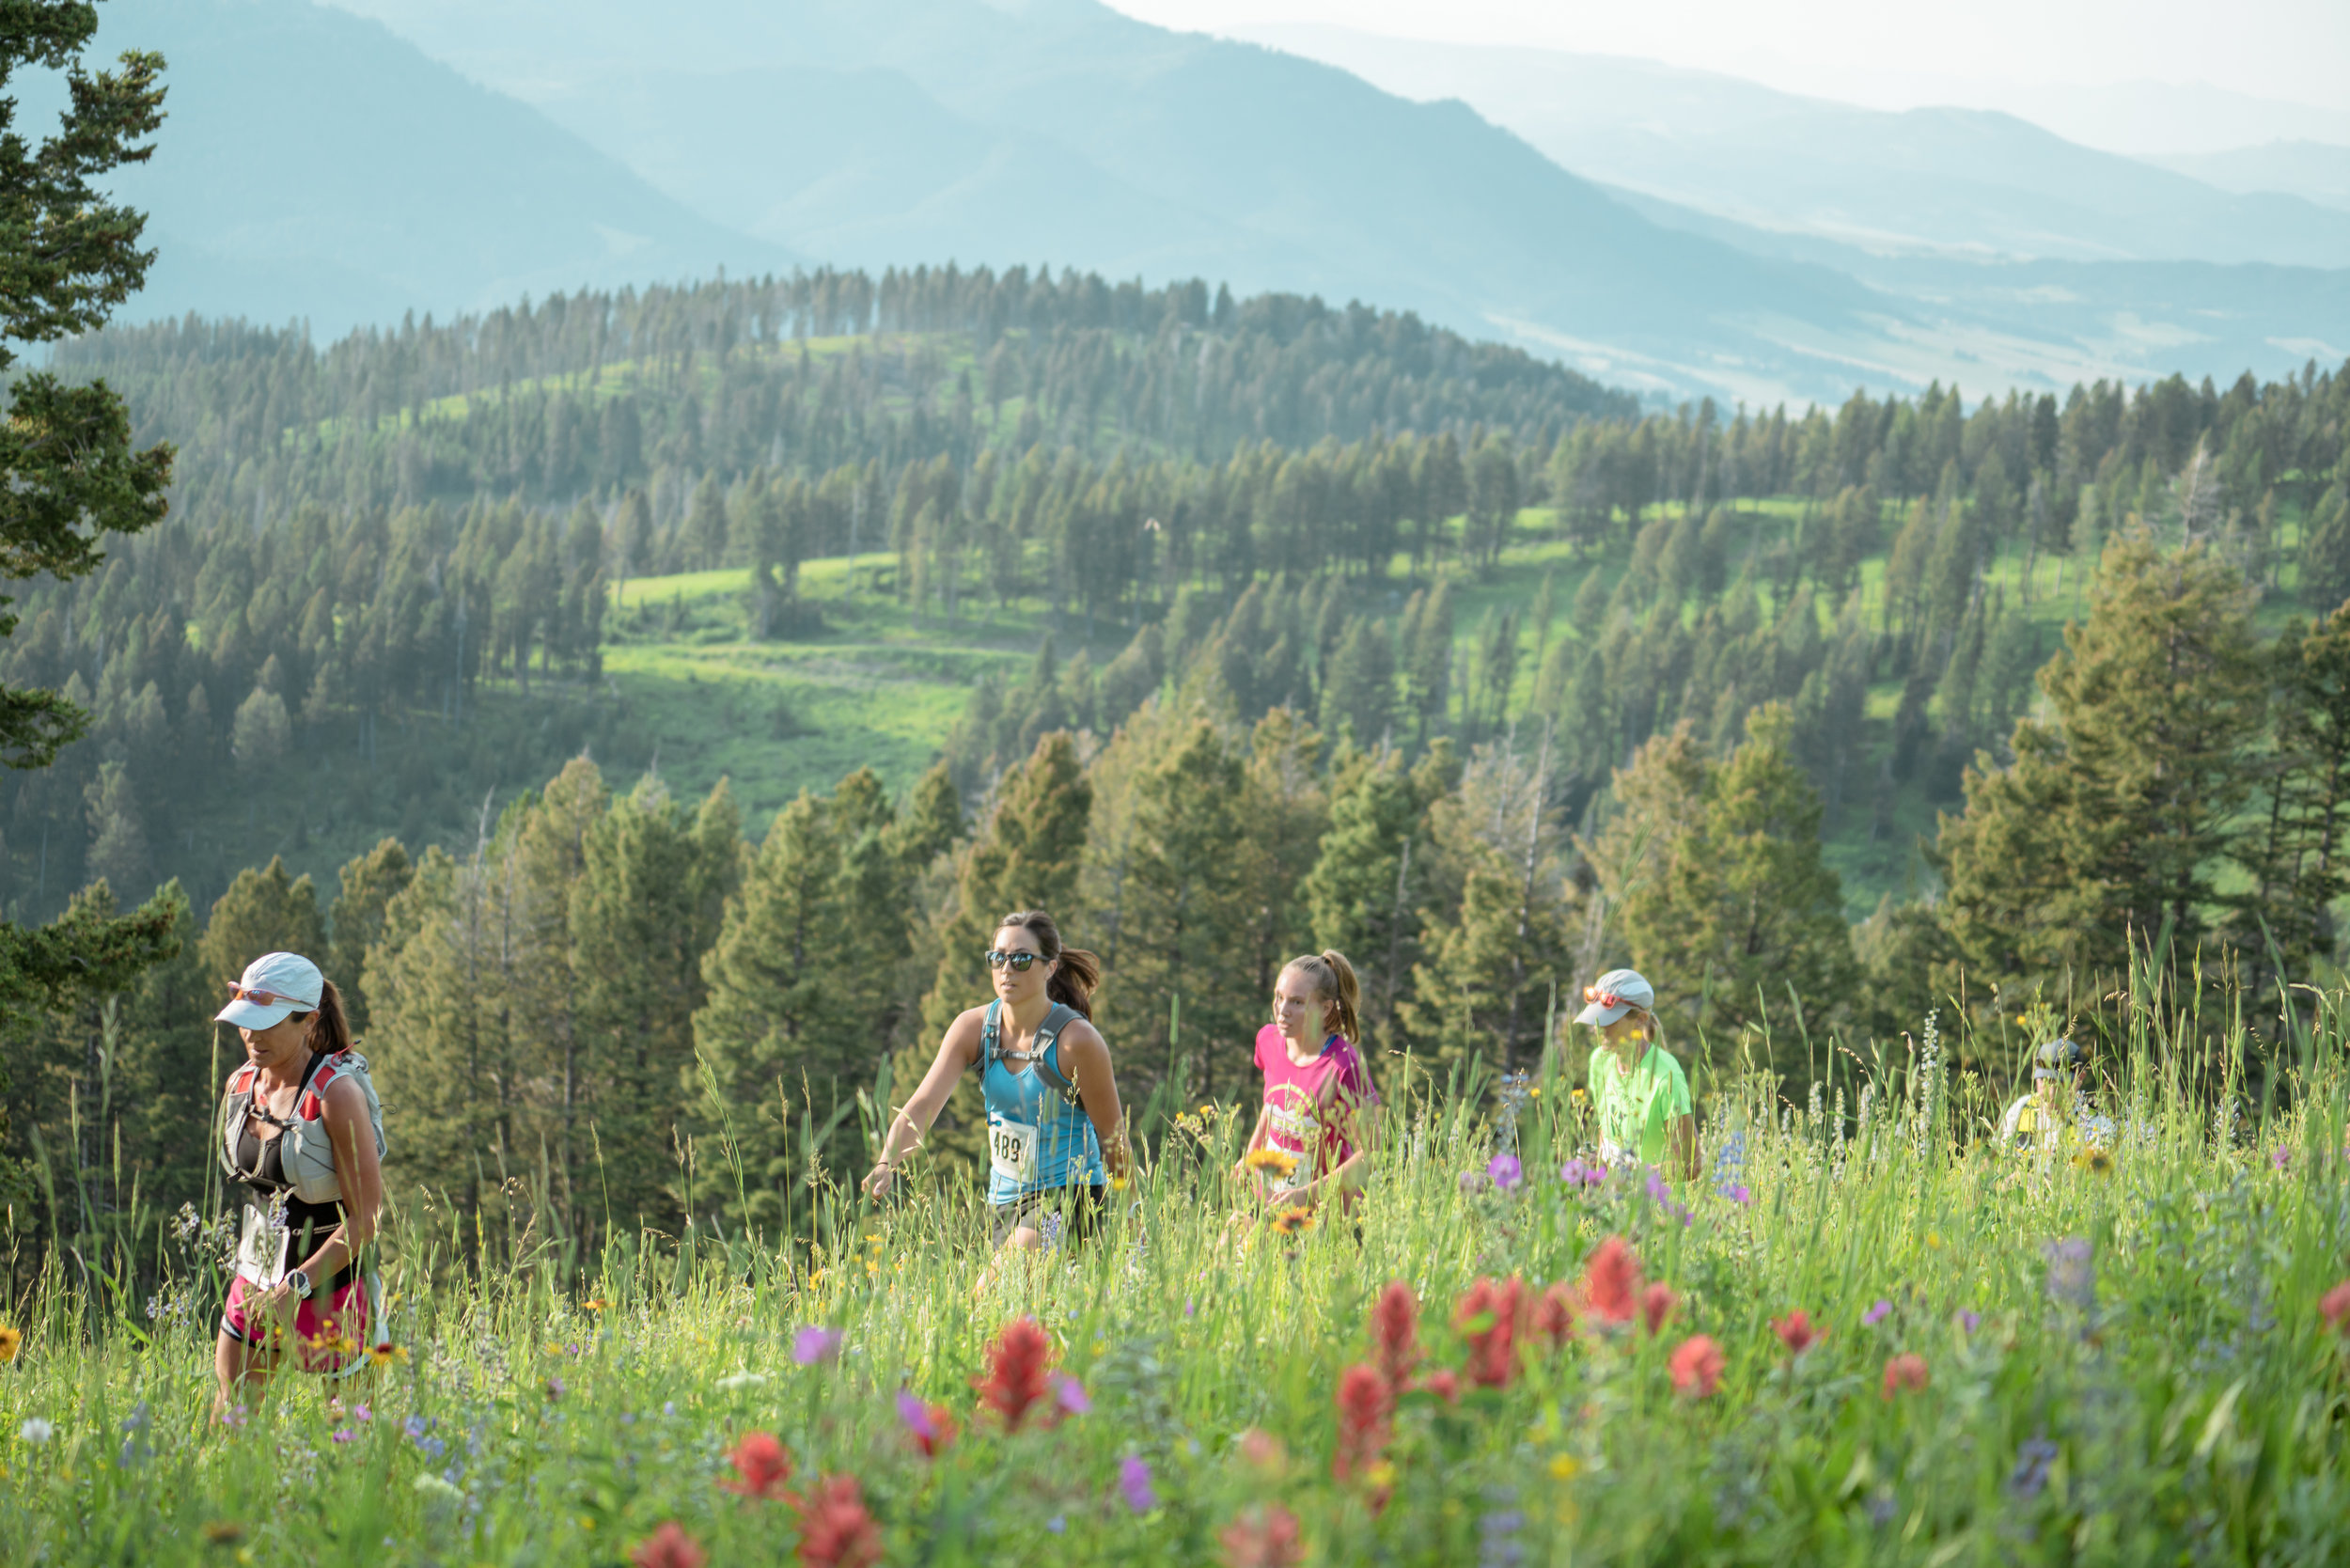 Runners at Bozeman Running Co. racing of Crosscuts at Bridger Bowl just north of Bozeman, Montana. Lots of wildflowers.